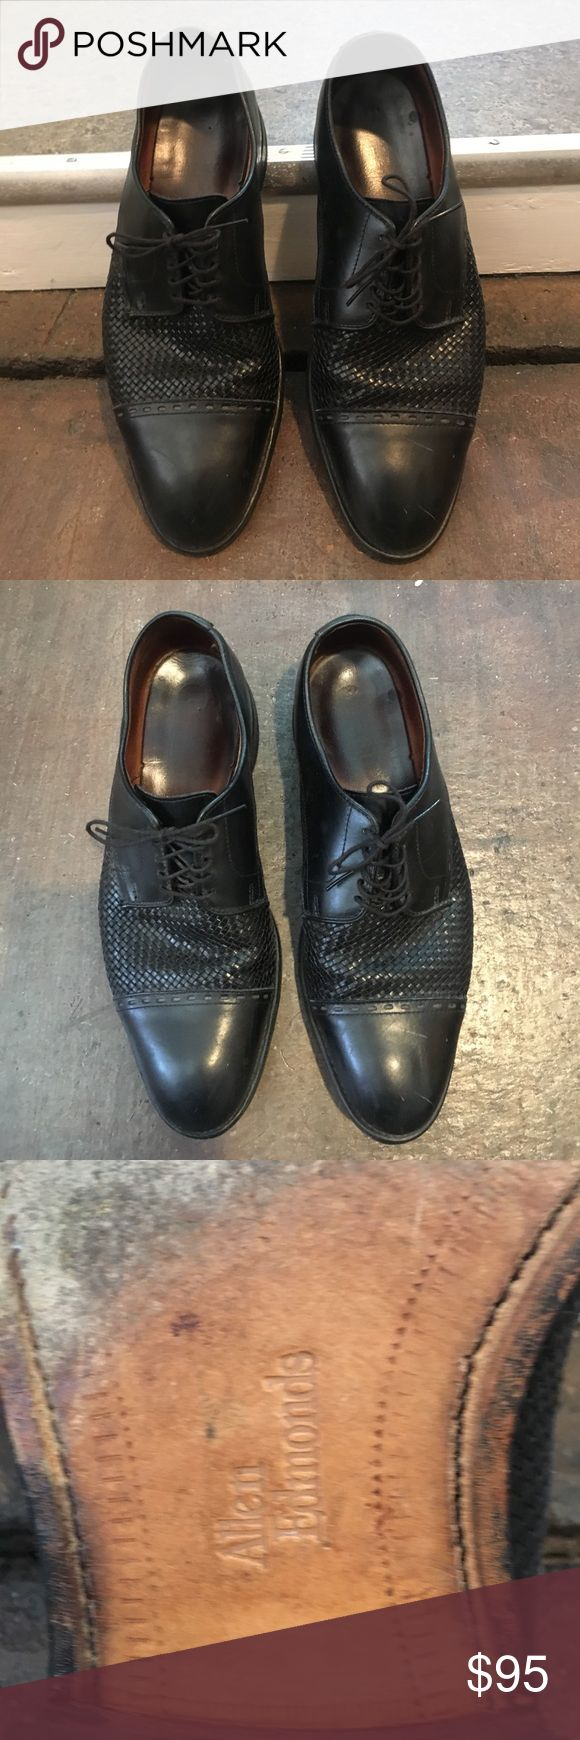 Allen Edmonds Mens Dress Shoe Mens designer dress shoe in black leather woven texture. Slightly worn but in great condition still and recently polished. This is a great steal! Allen Edmonds Shoes Oxfords & Derbys